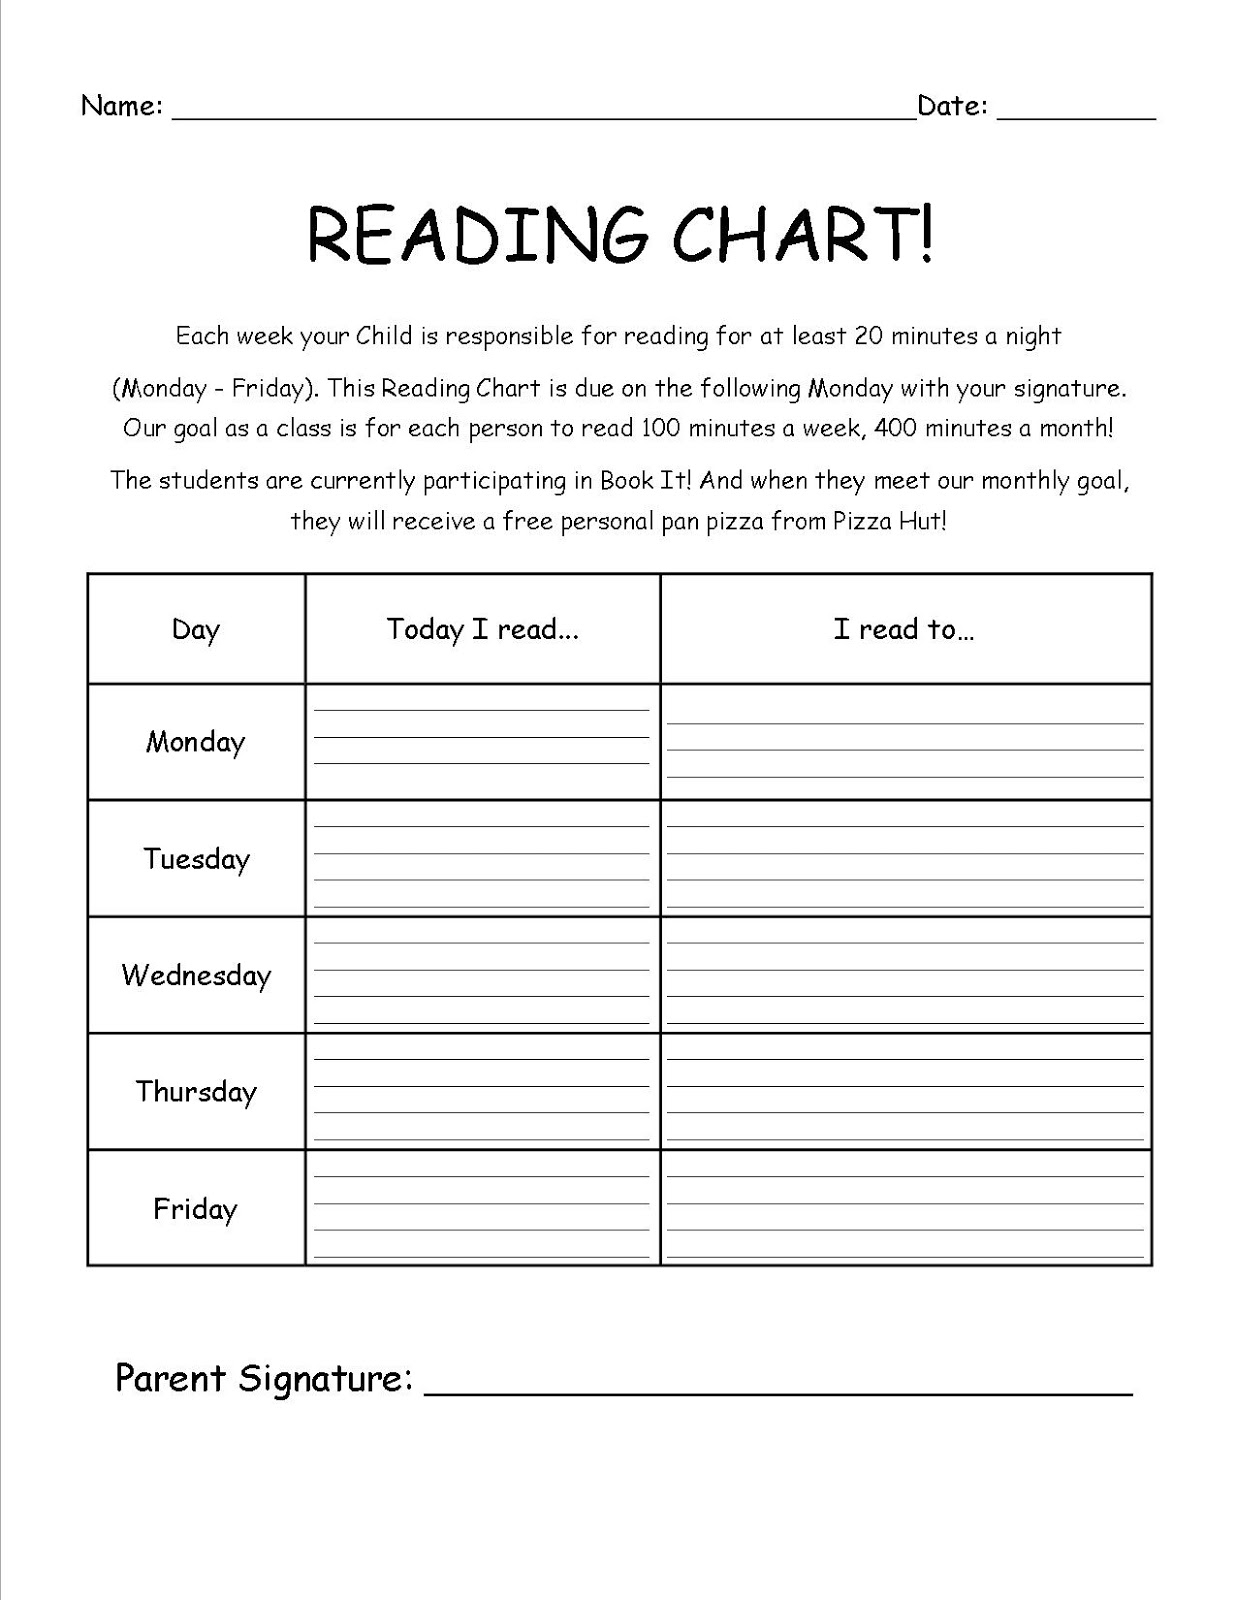 September 11 Comprehension Worksheets | Free Printable Math Worksheets ...